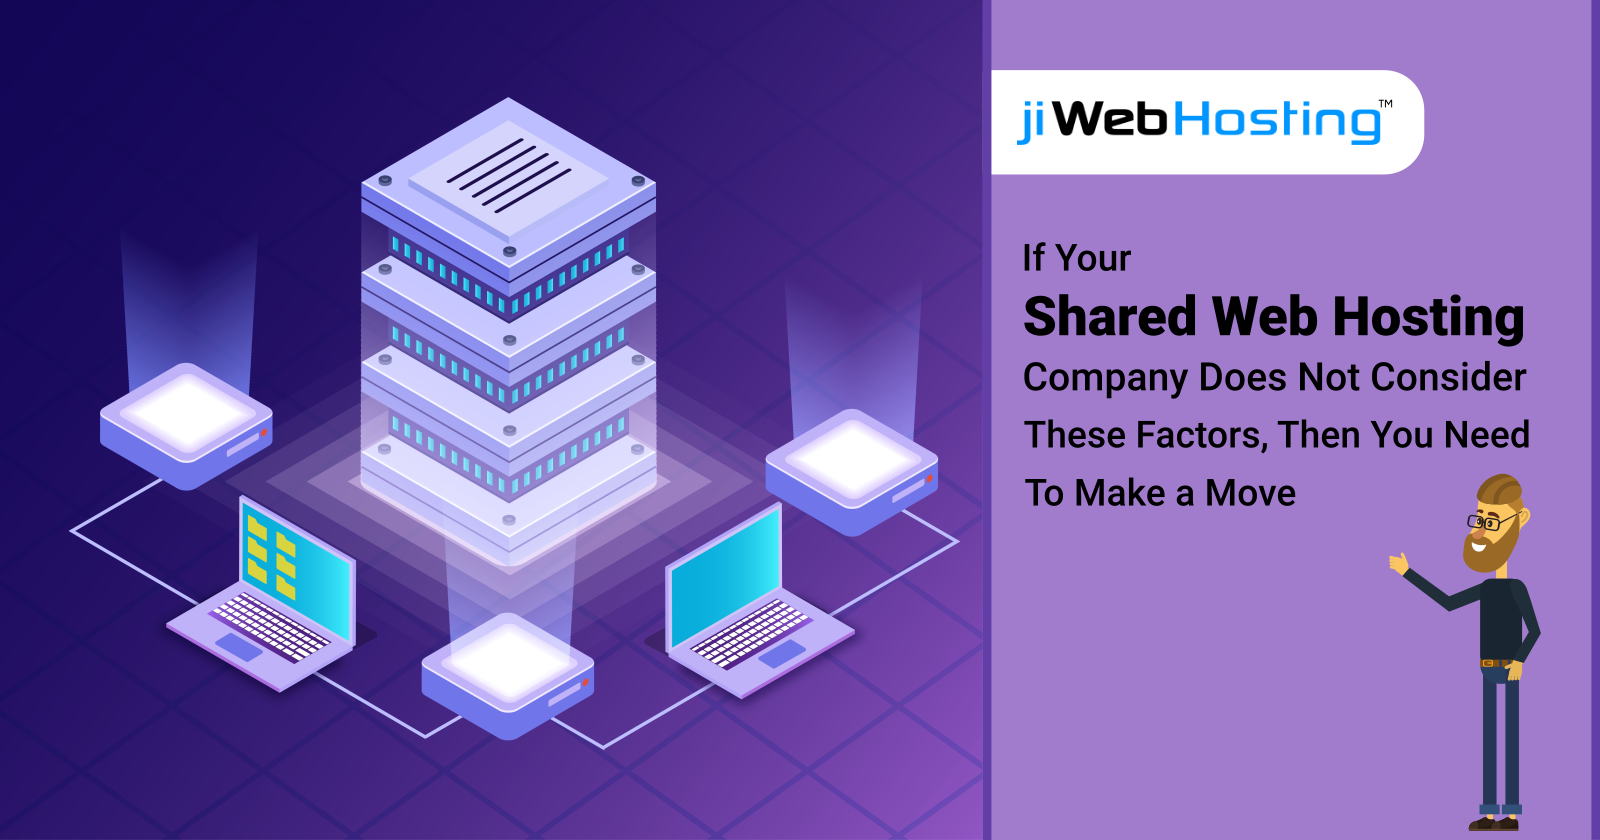 If Your Shared Web Hosting Company Does Not Consider These Factors, Then You Need To Make a Move